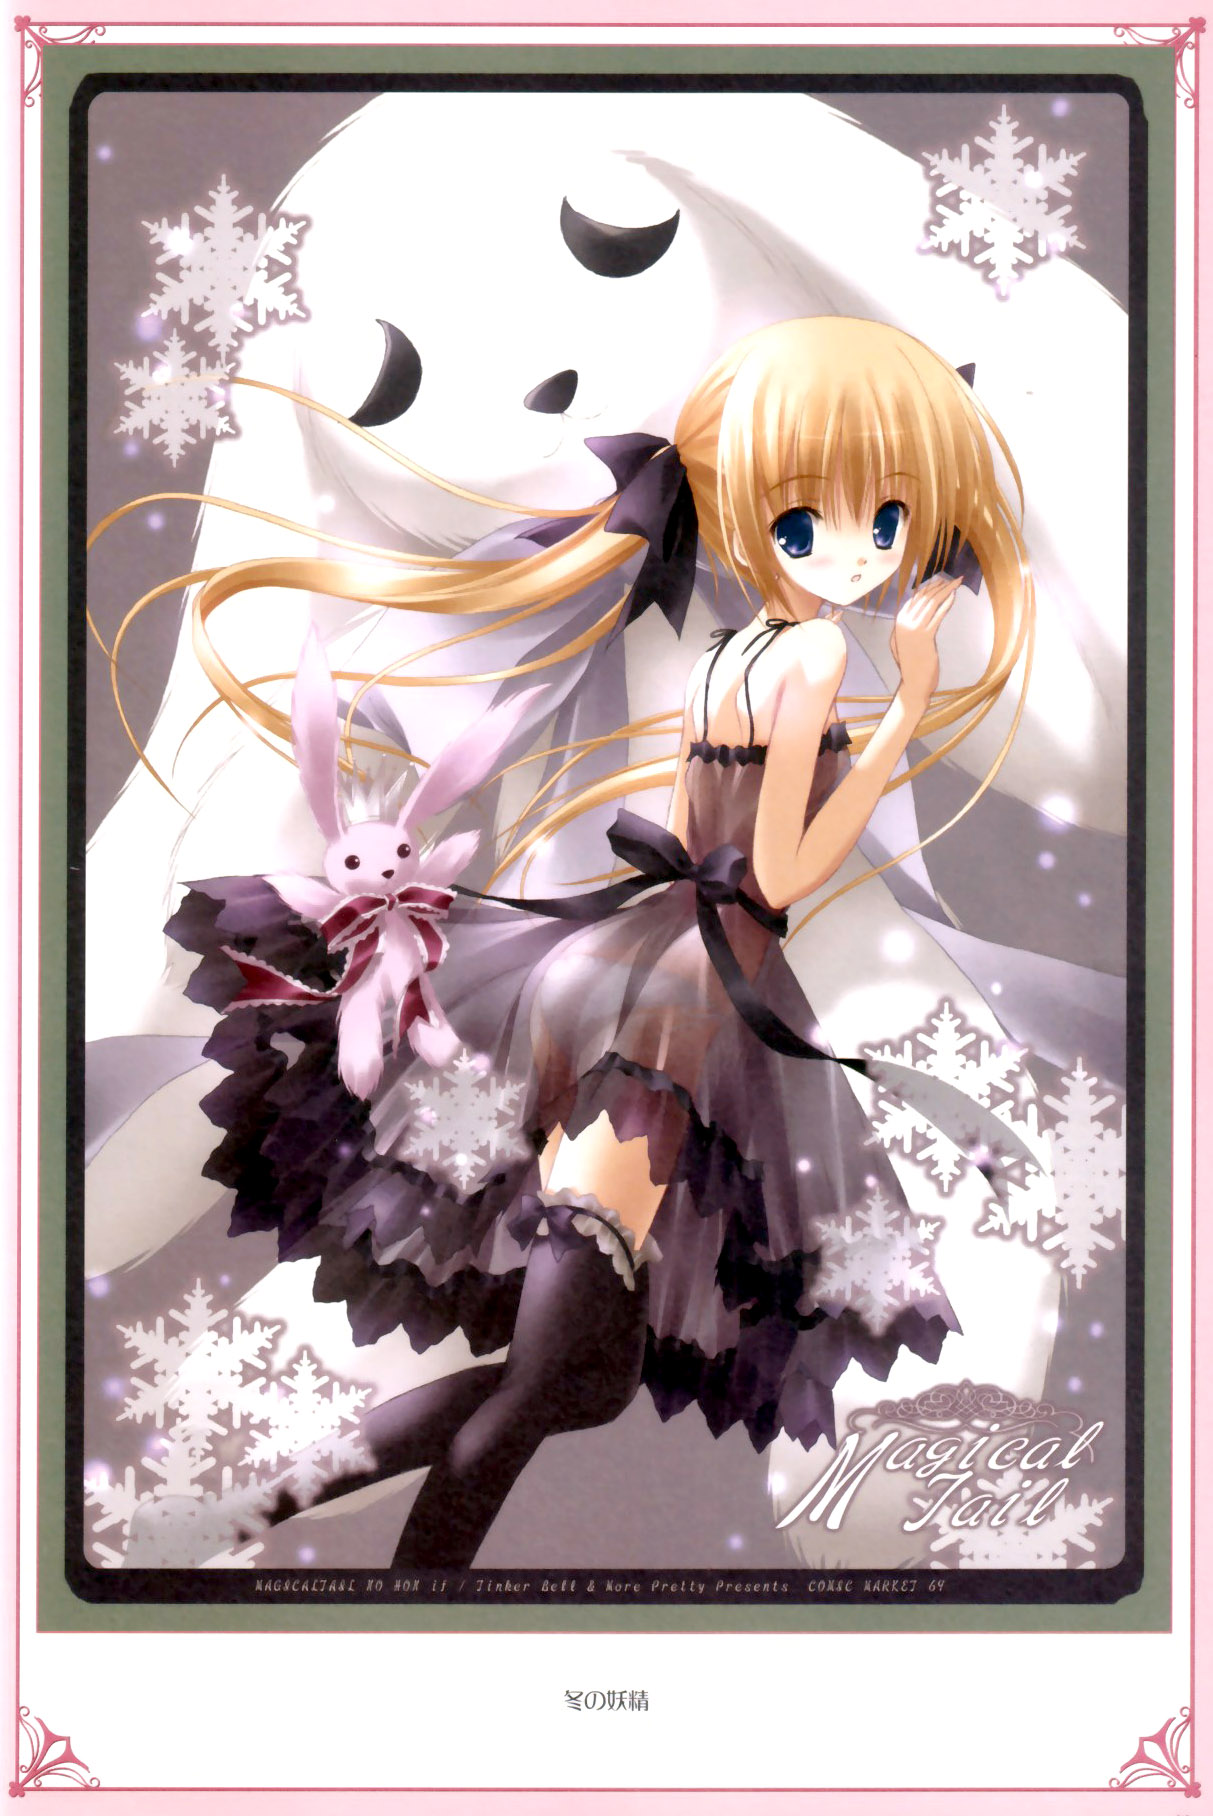 magical tail - tinkerbell - image #40051 - zerochan anime